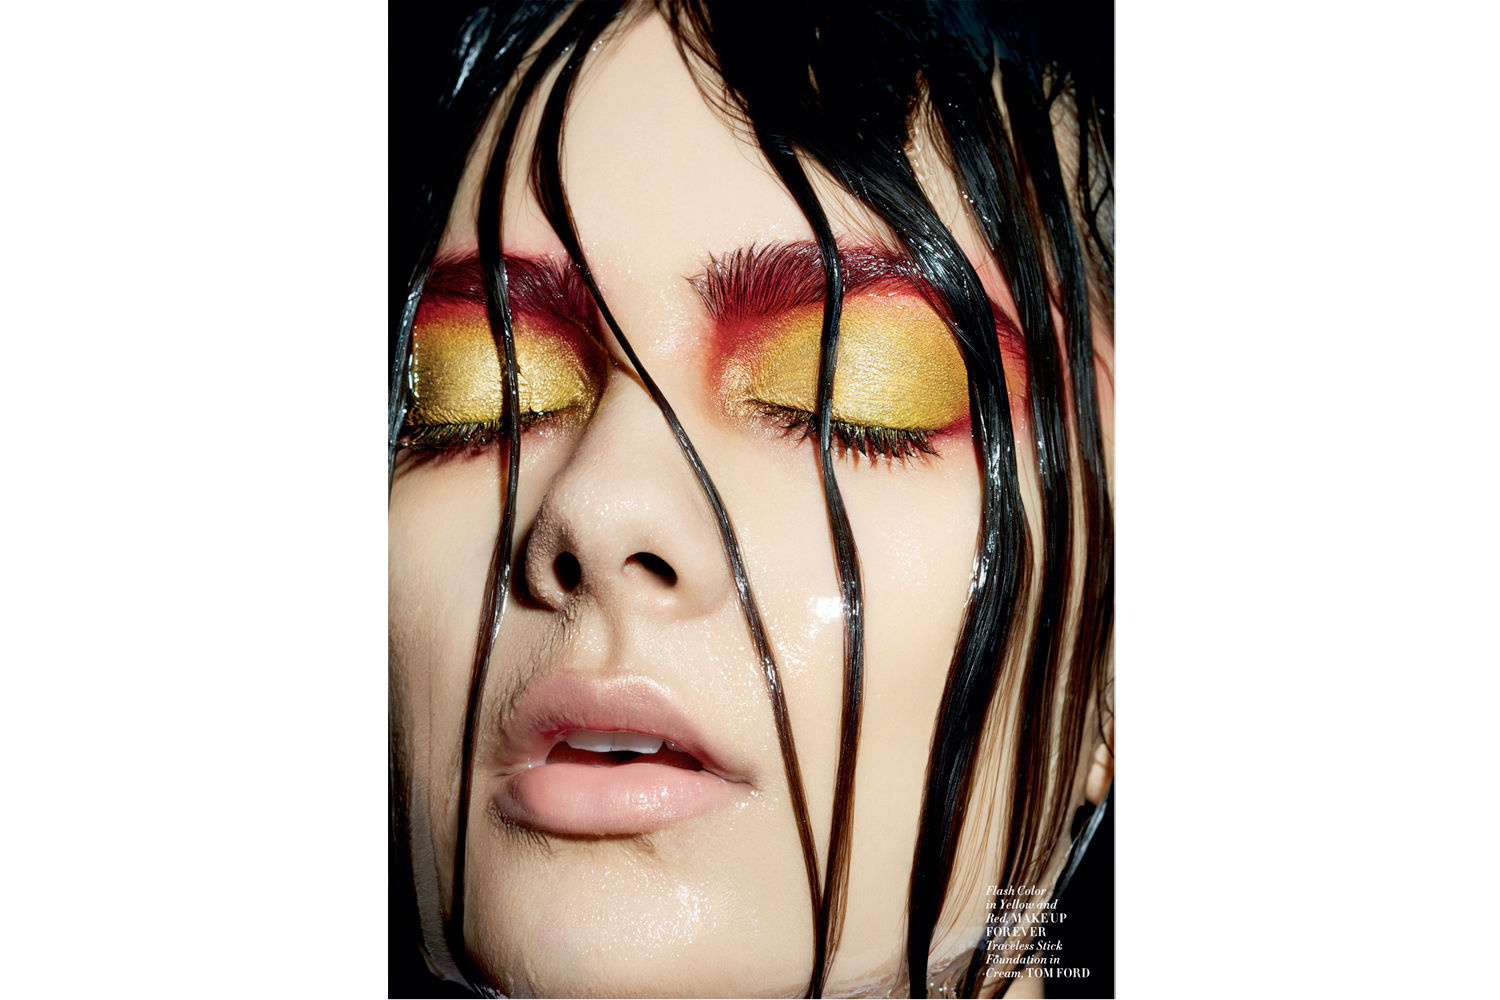 Beauty Photographer Dorit Thies shot this beauty layout for L'Officiel Magazine ID